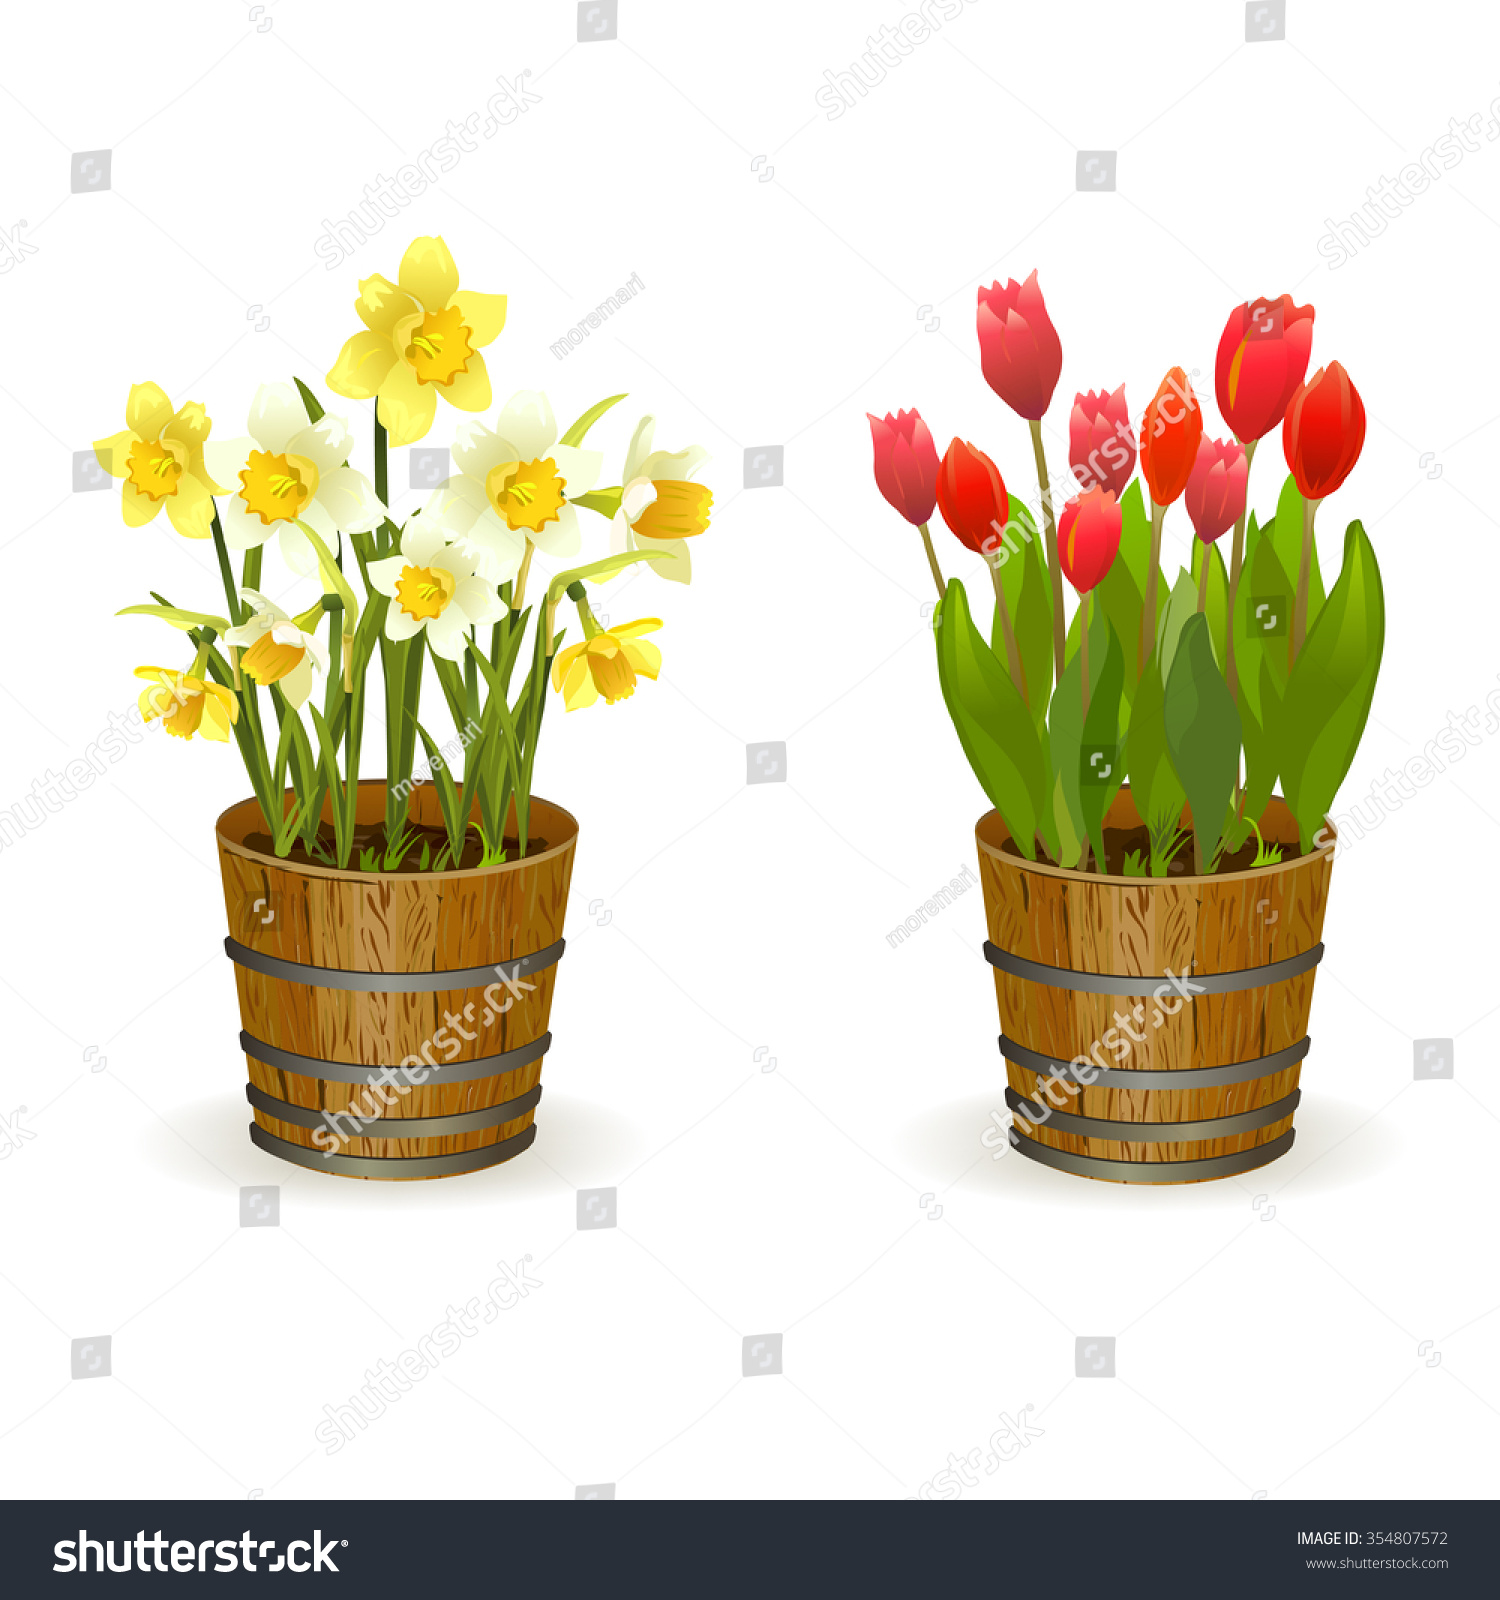 Spring Flowers Daffodils And Tulips Vector Illustration Ez Canvas